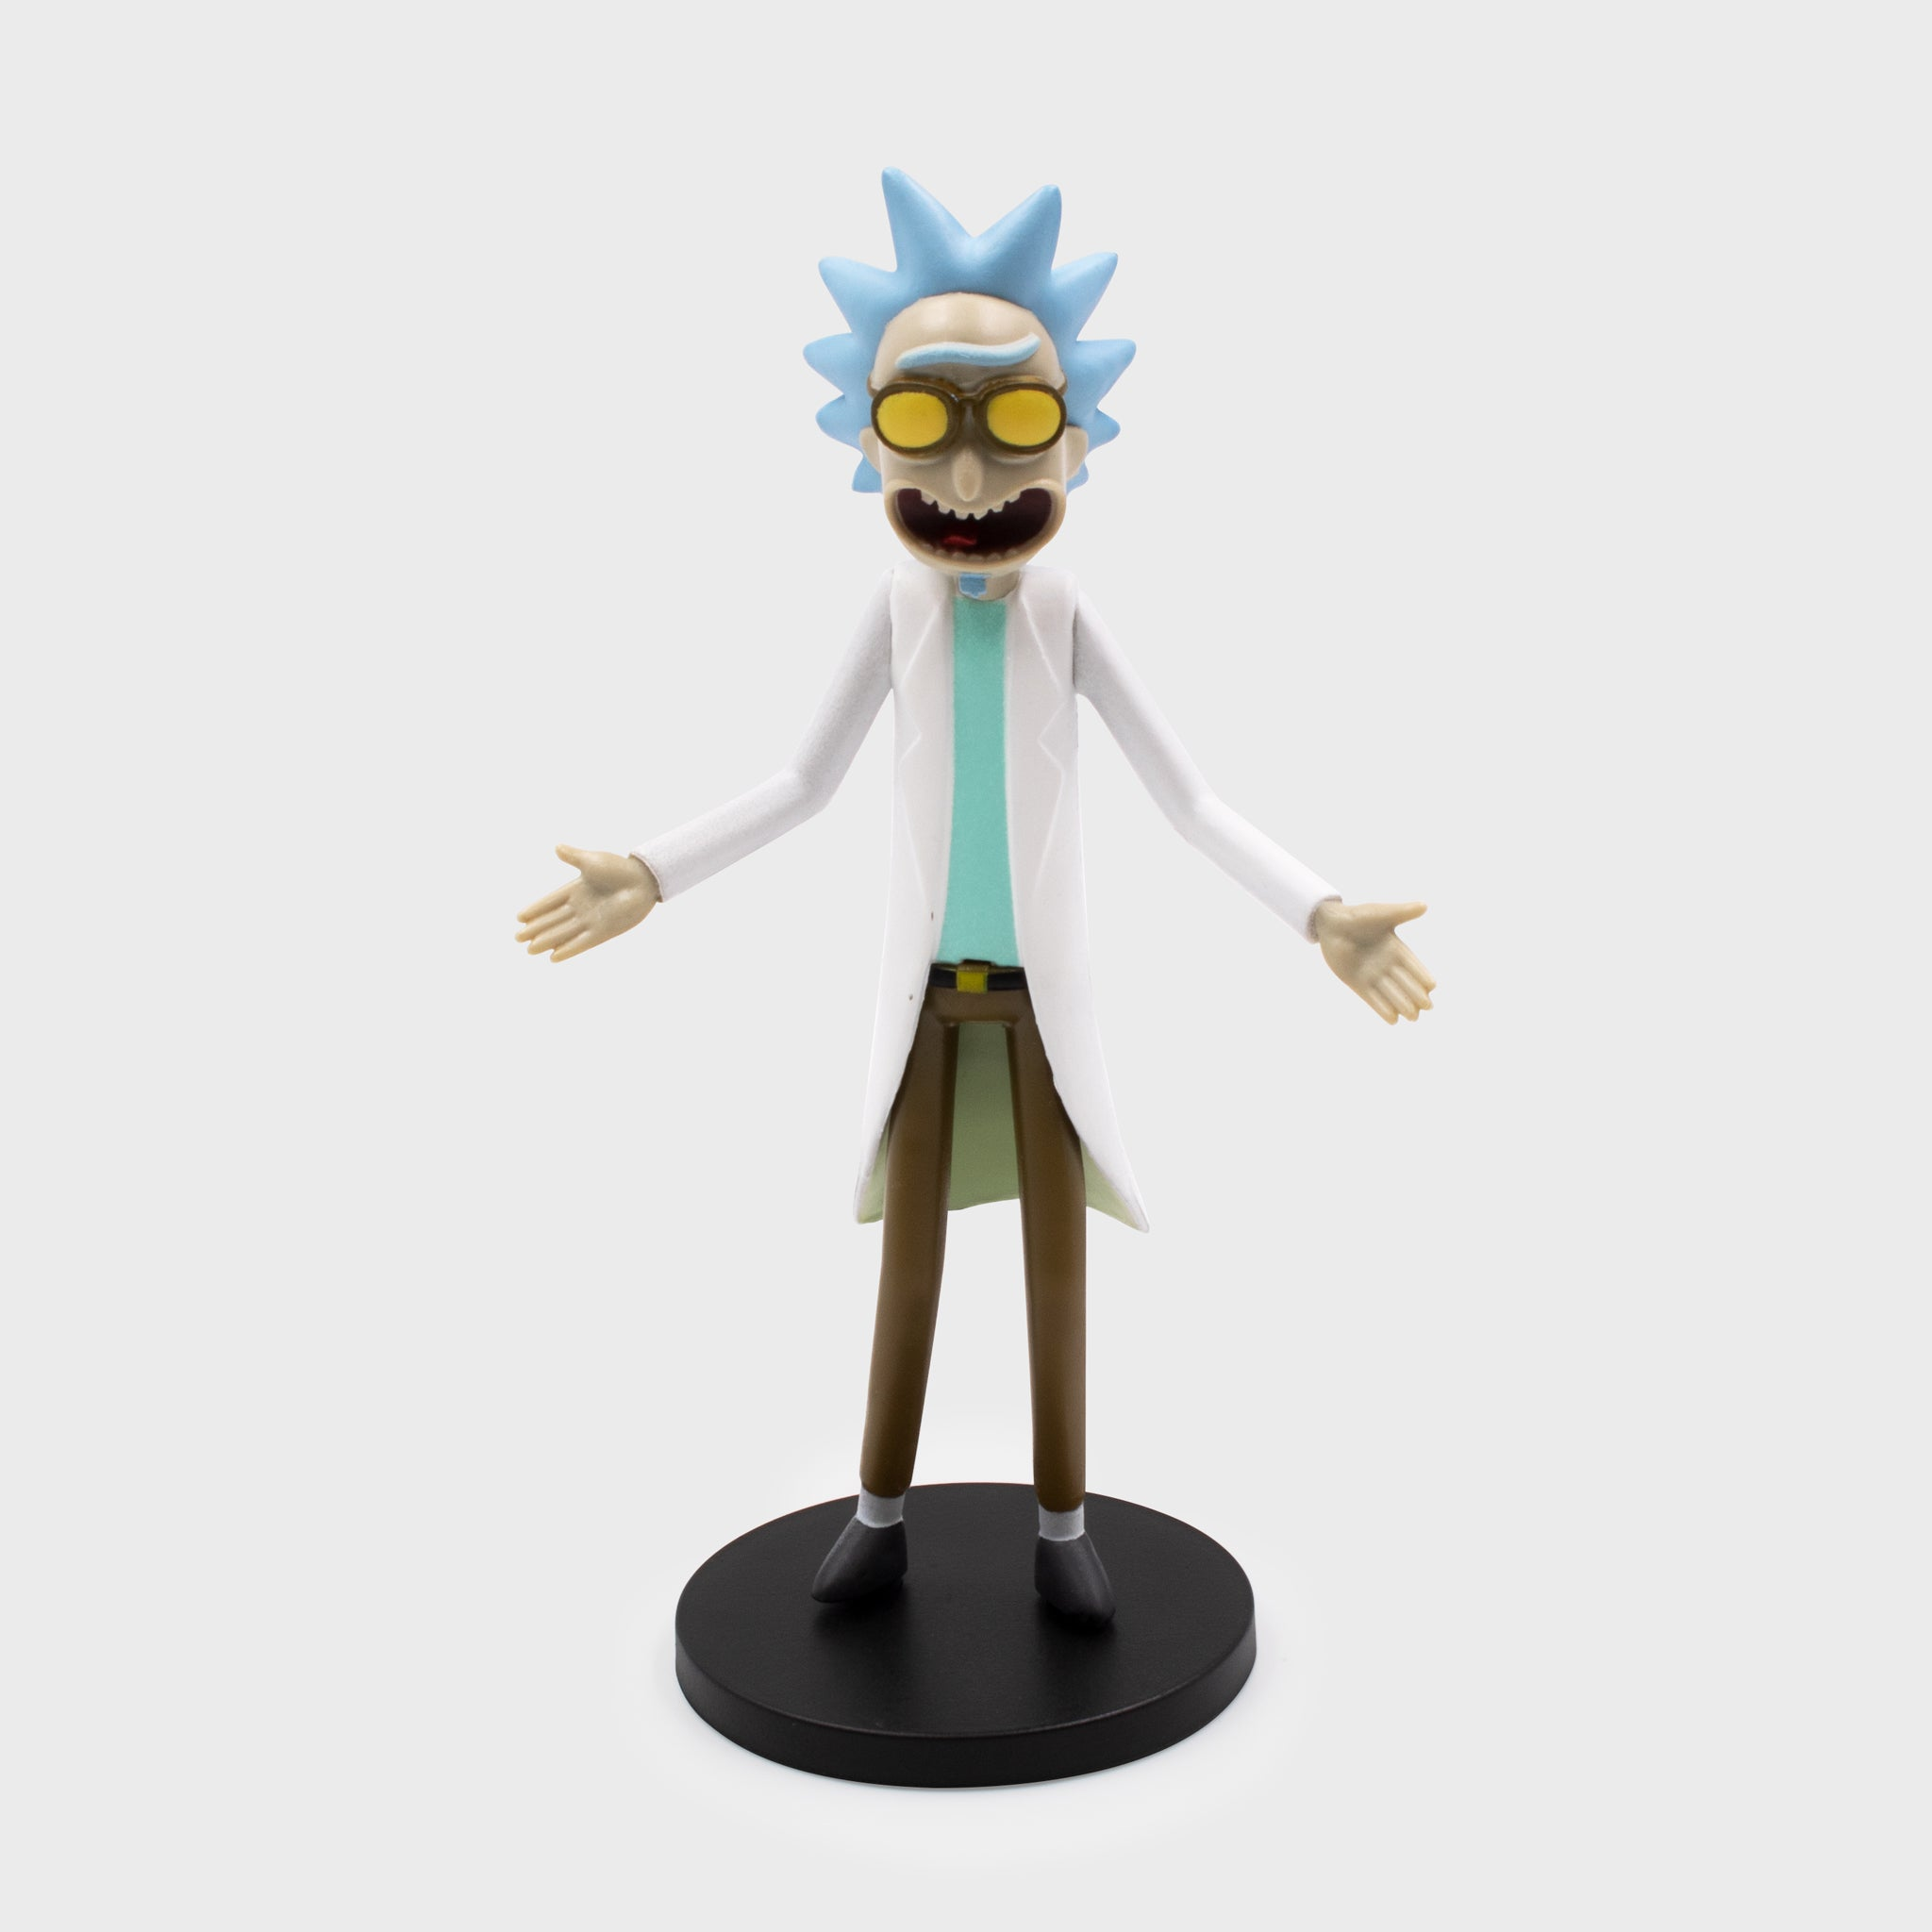 rick & morty rick and morty adult swim cartoon network cartoons exclusive walmart retail box accessories collectibles culturefly rick sanchez vinyl figure